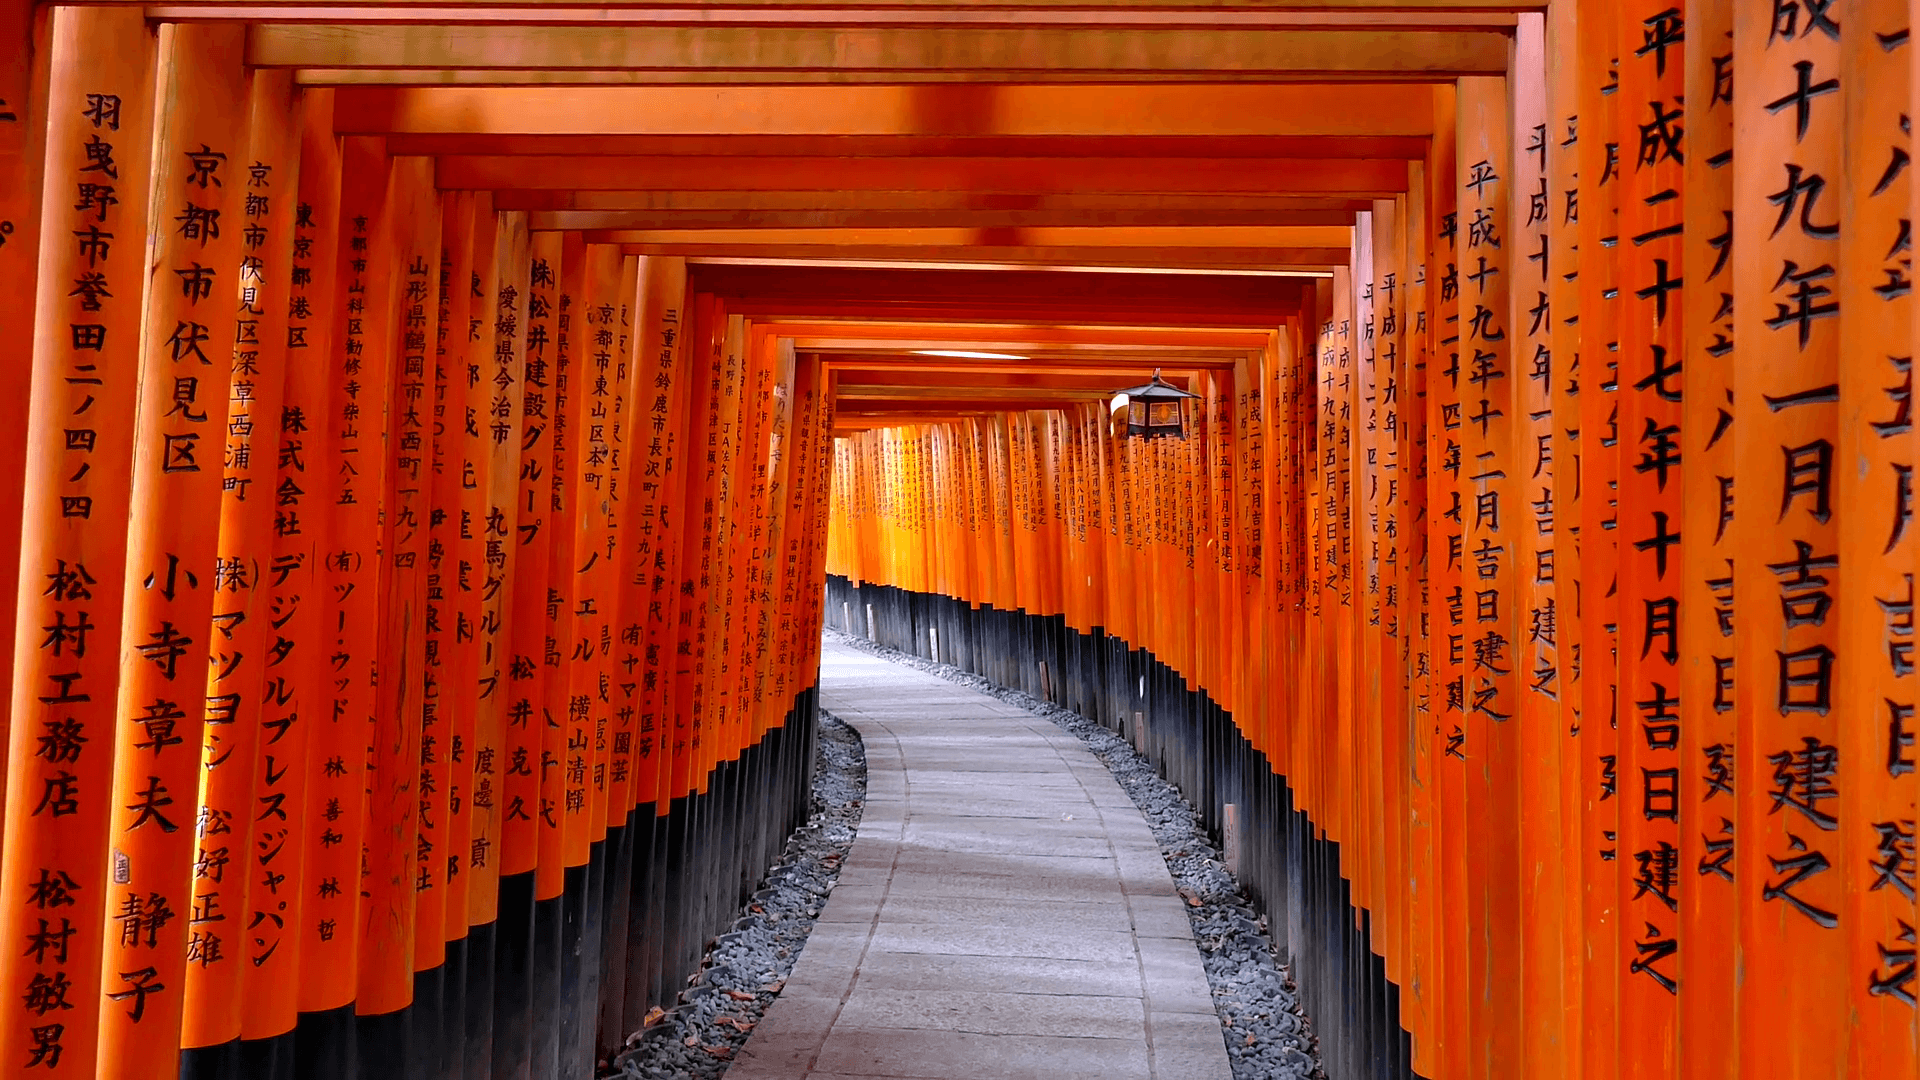 Fushimi Inari Shrine or Fushimi Inari Taisha, a Shinto shrine in